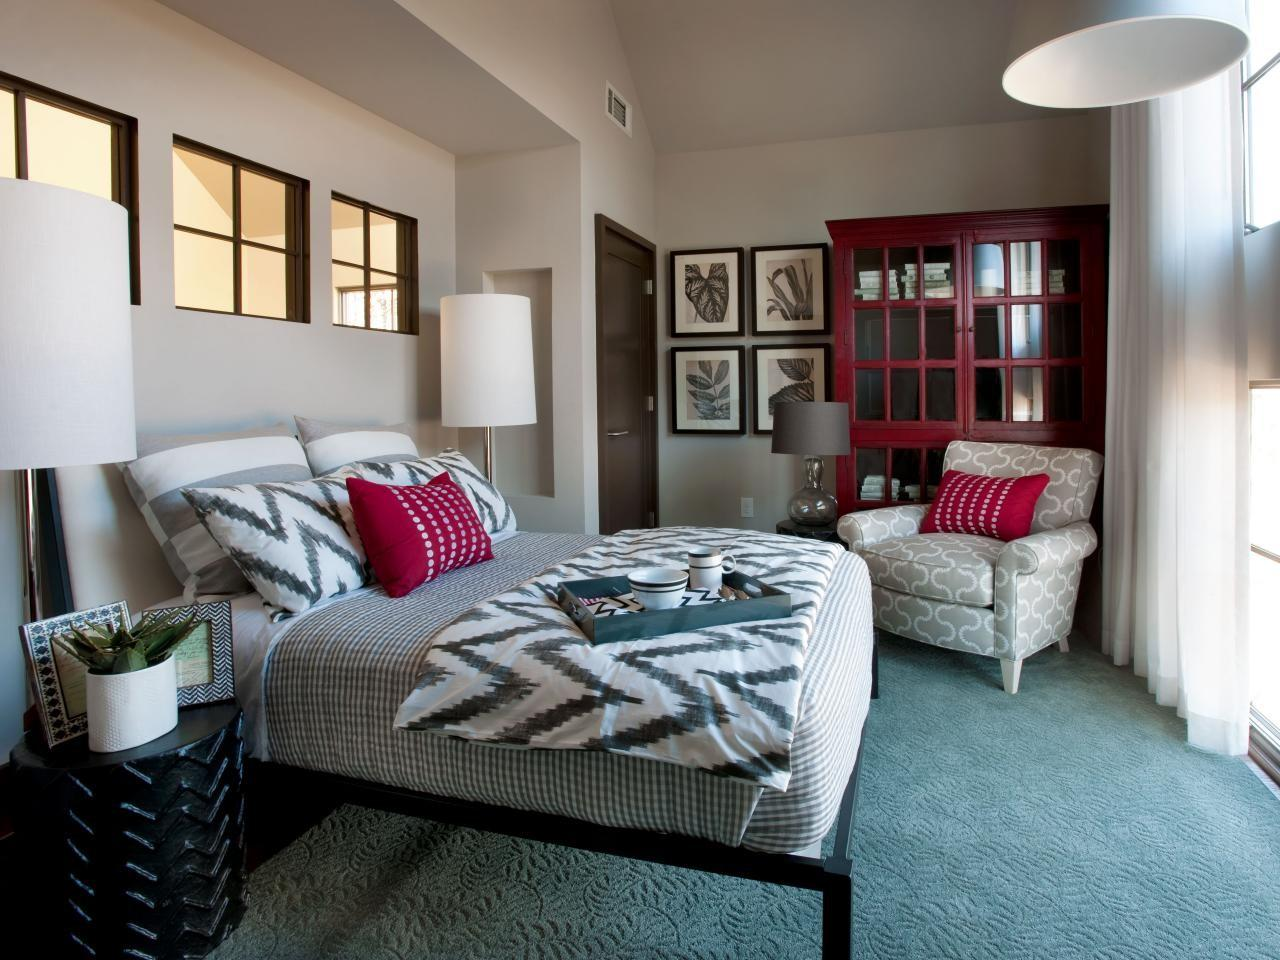 Home Office Guest Room Ideas Bedroom